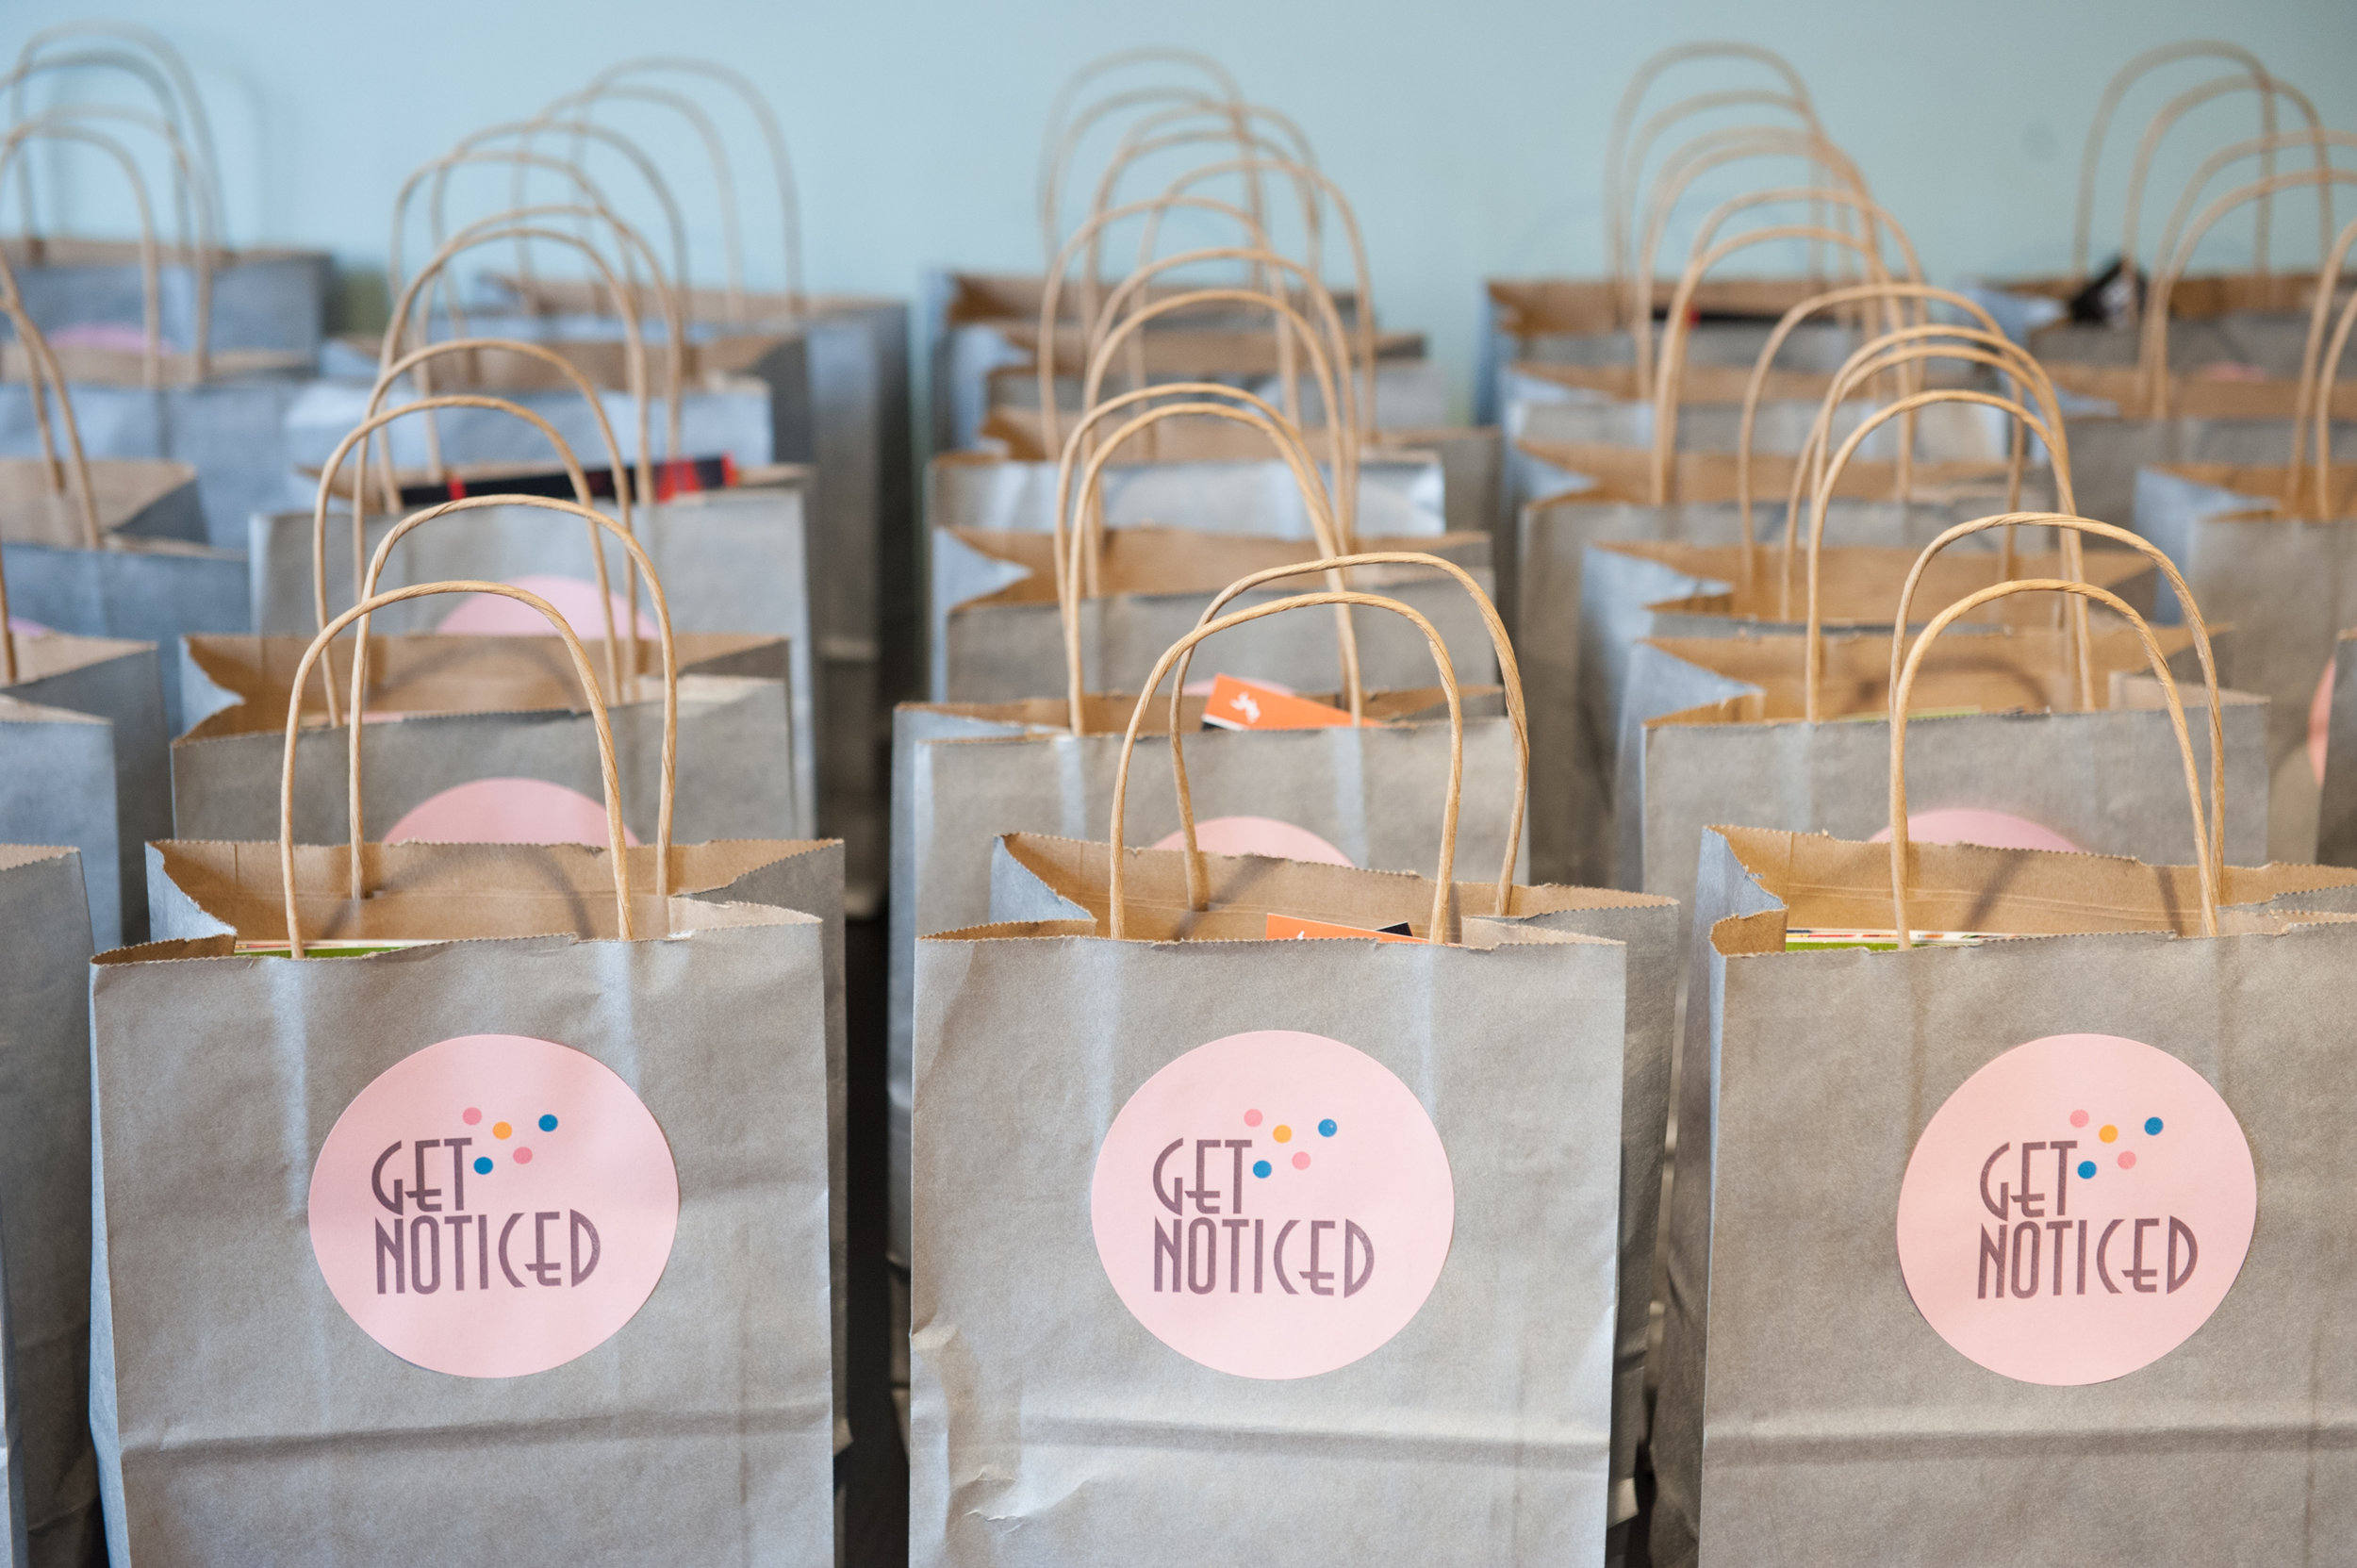 April 26, 2017 - This event was a huge success with incredible attendance. thank you to our sponsors: chicago woman magazine, breather, cream wine, bakeables, scone city, blair carothers, greater than,kendra scott and shred415.